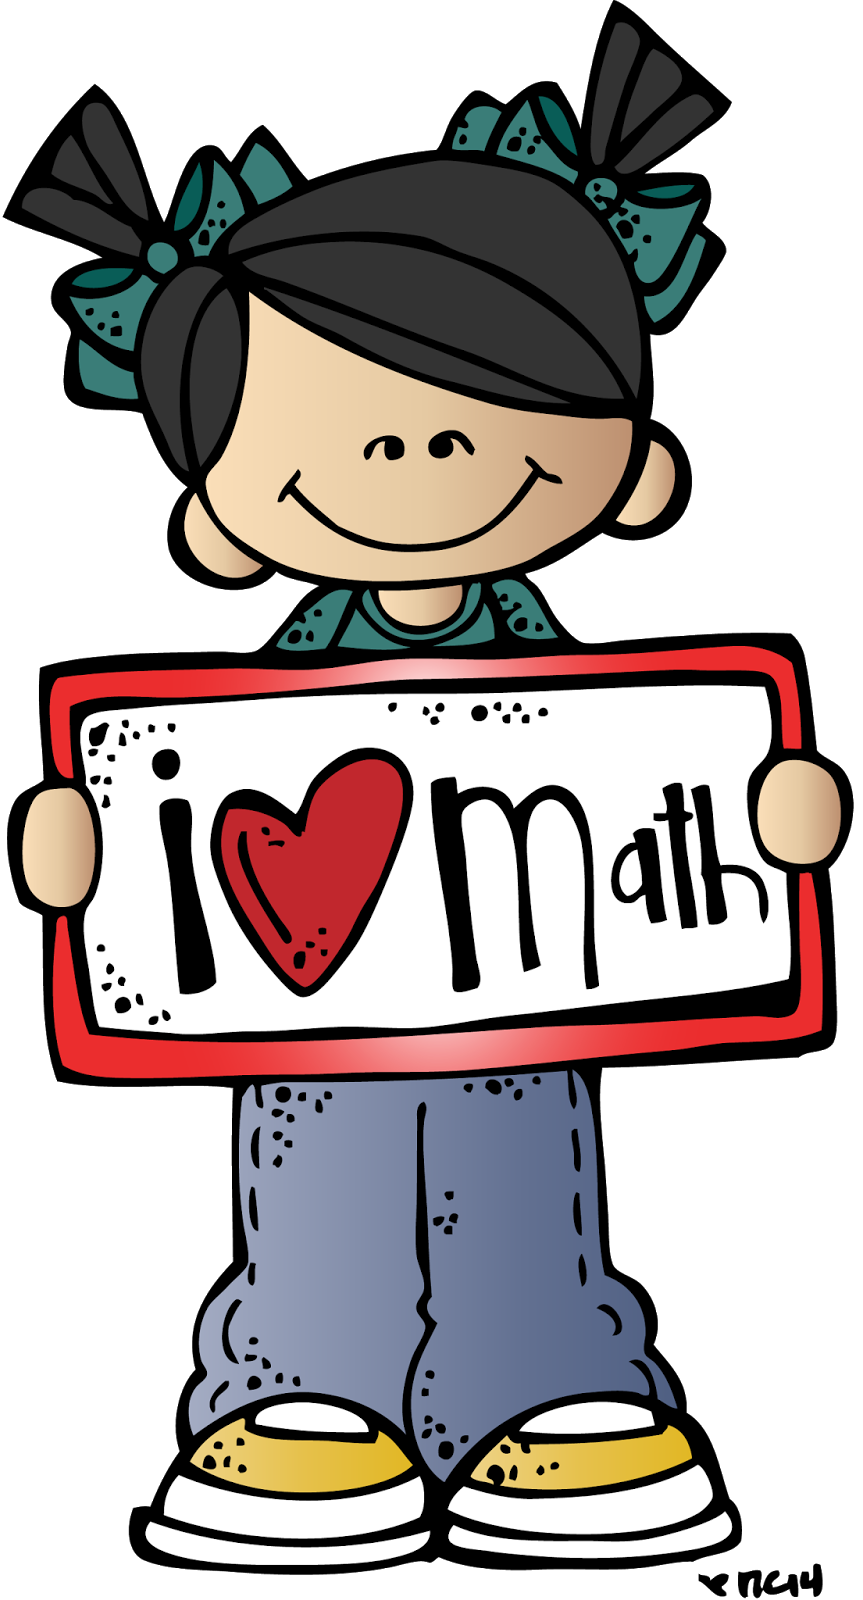 Multiplication clipart math exam, Multiplication math exam.